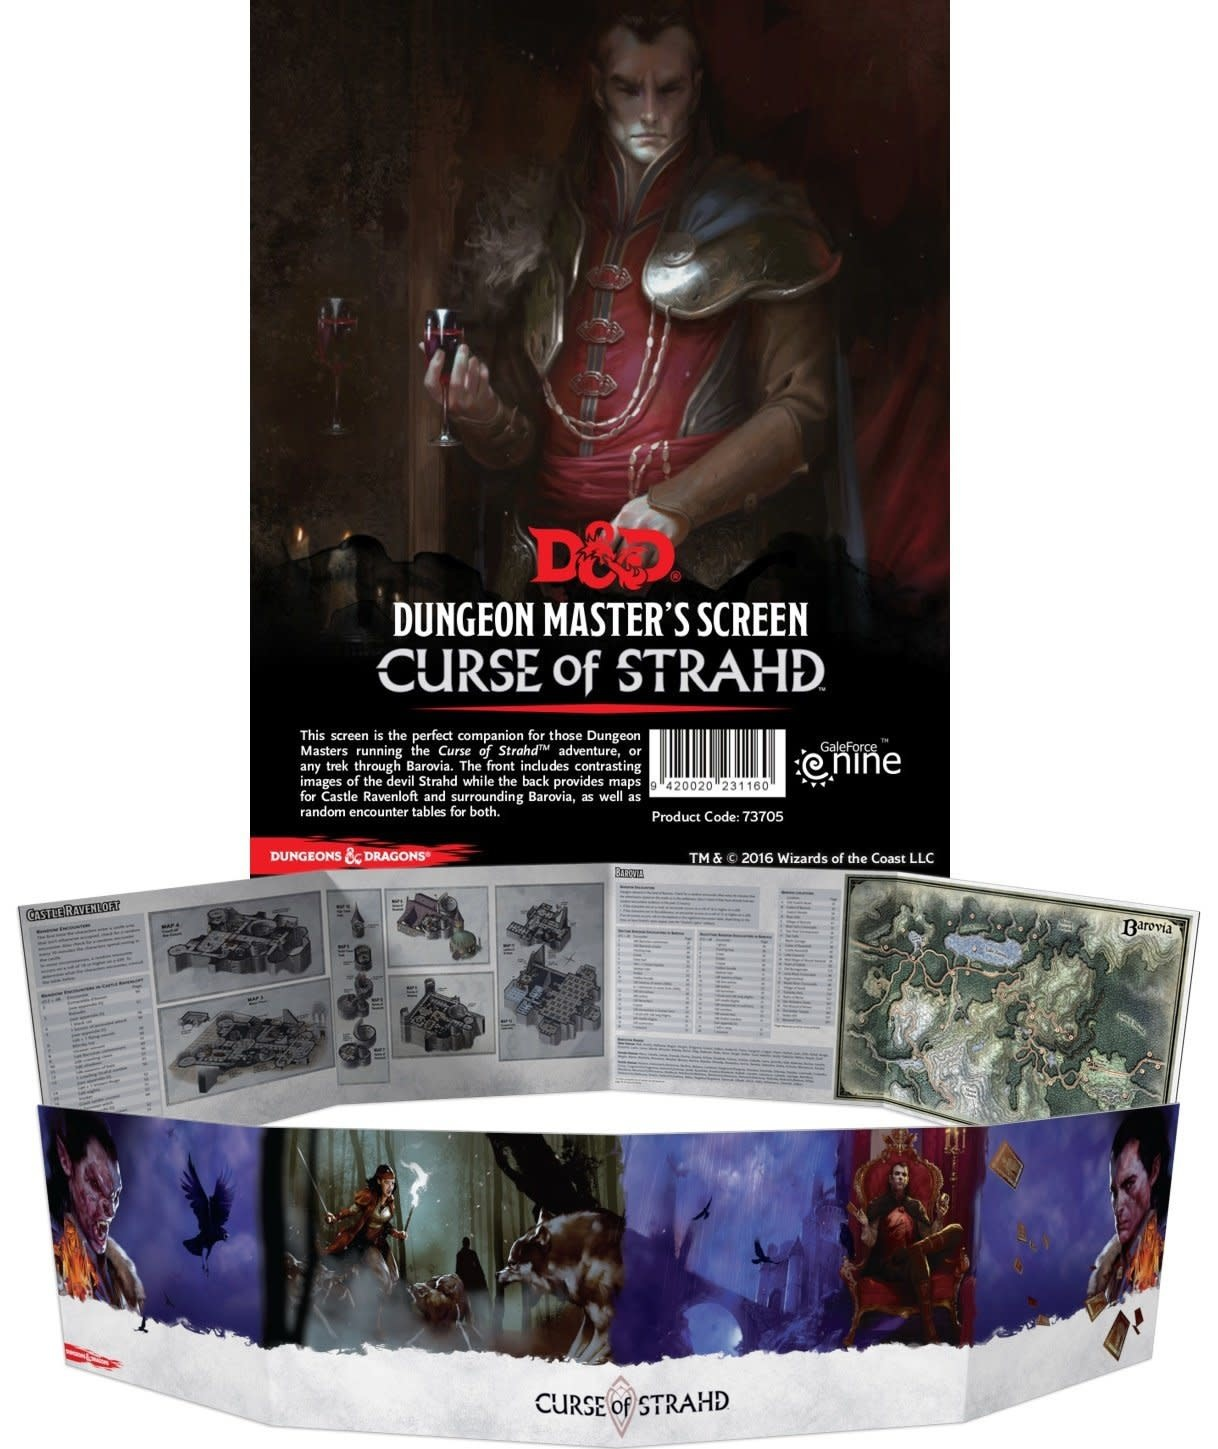 Curse of Strahd: Dungeon Master's Screen